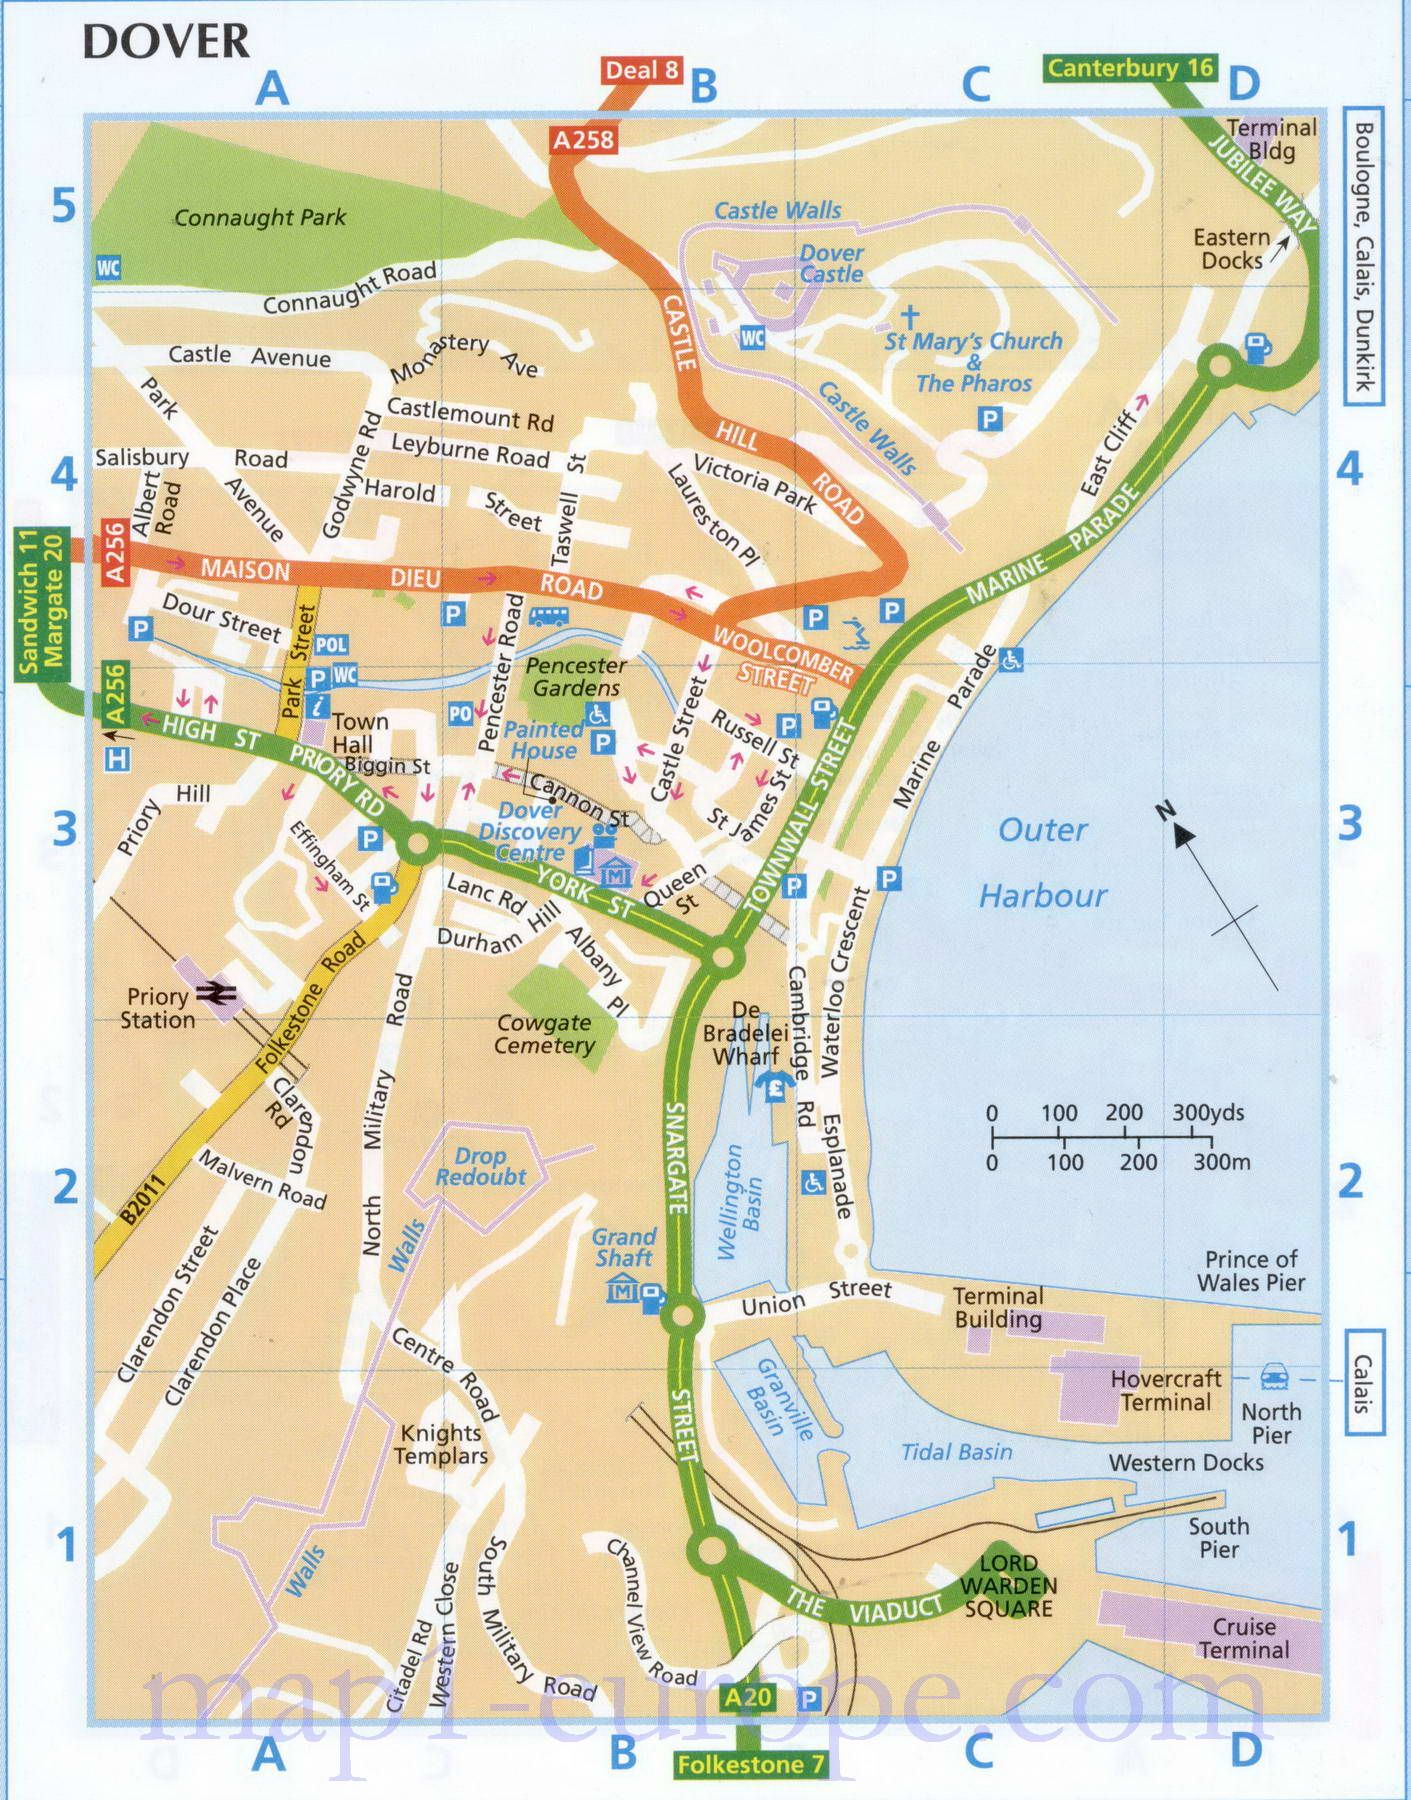 Street Map Of Dover Uk Gallery - Diagram Writing Sample And Guide